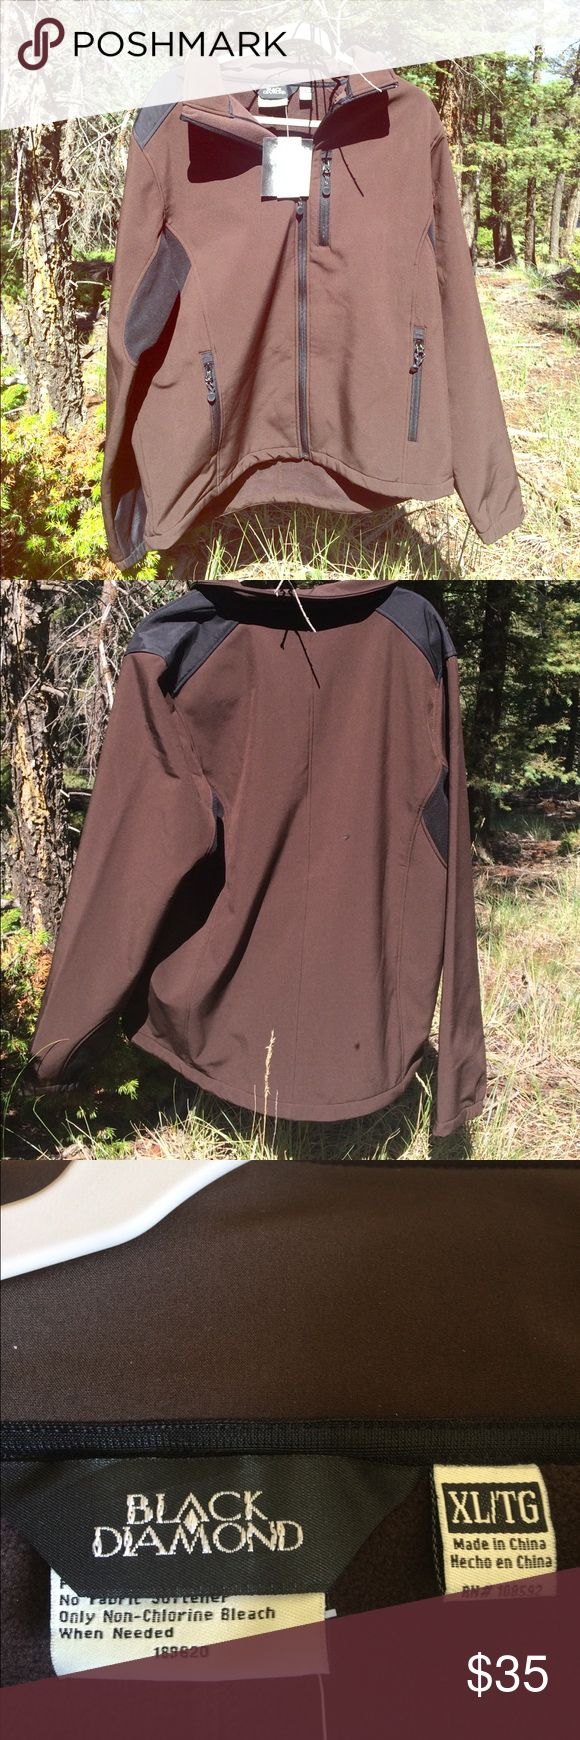 Black Diamond Soft Shell Jacket Fleece lined brown and black Men's Soft Shell Jacket. Has 2 side zipped pockets and one down the chest. Color is French Roast. Black Diamond Jackets & Coats Ski & Snowboard